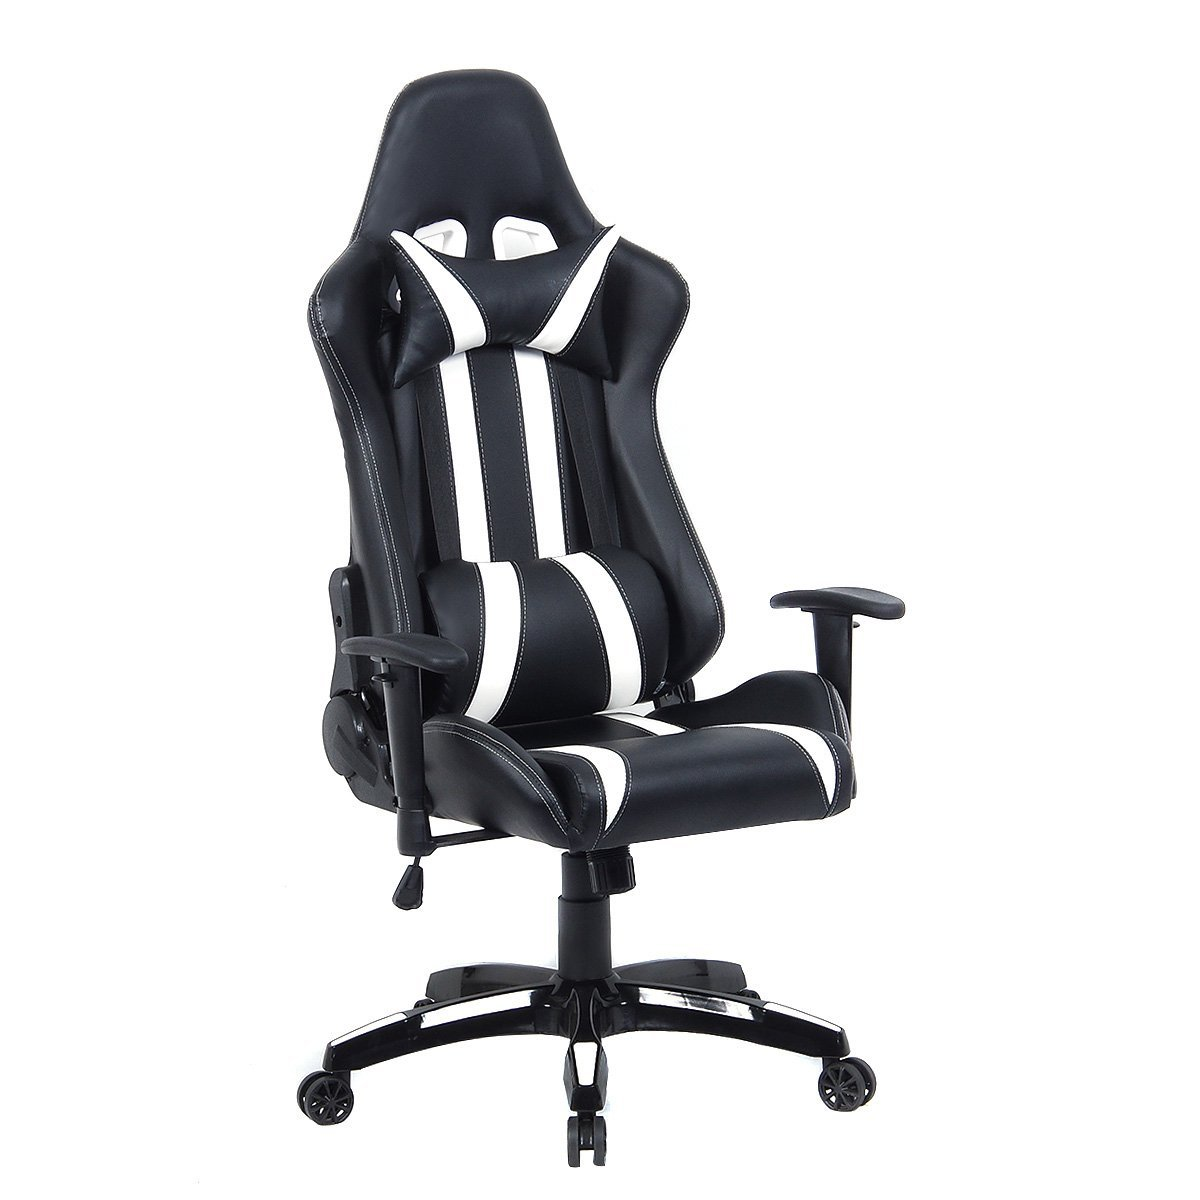 Improve Your Game With An Awesome Gaming Chair  Gaming Chairs